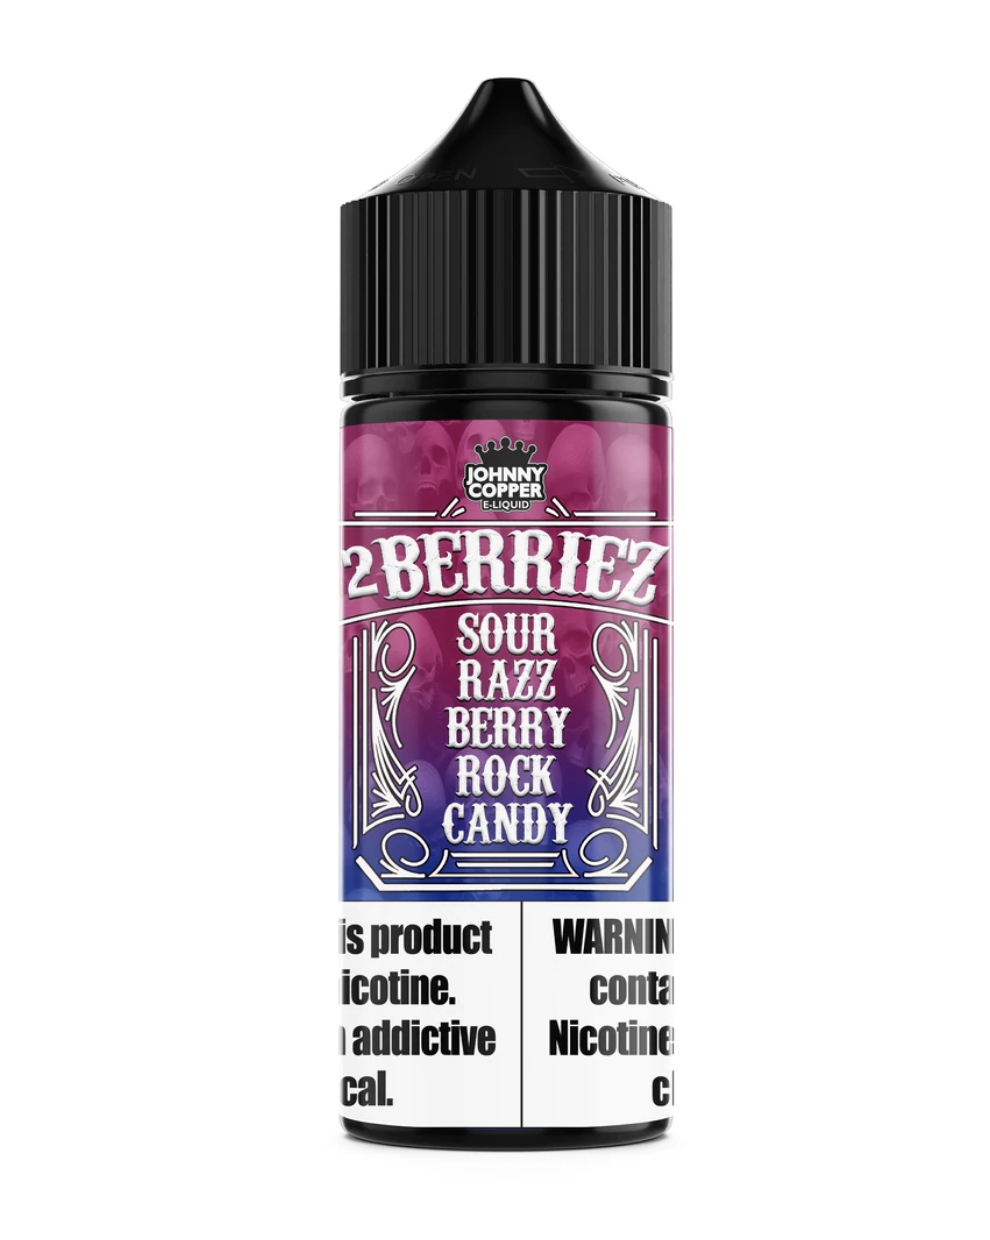 Johnny Copper 2 Berries 120ml